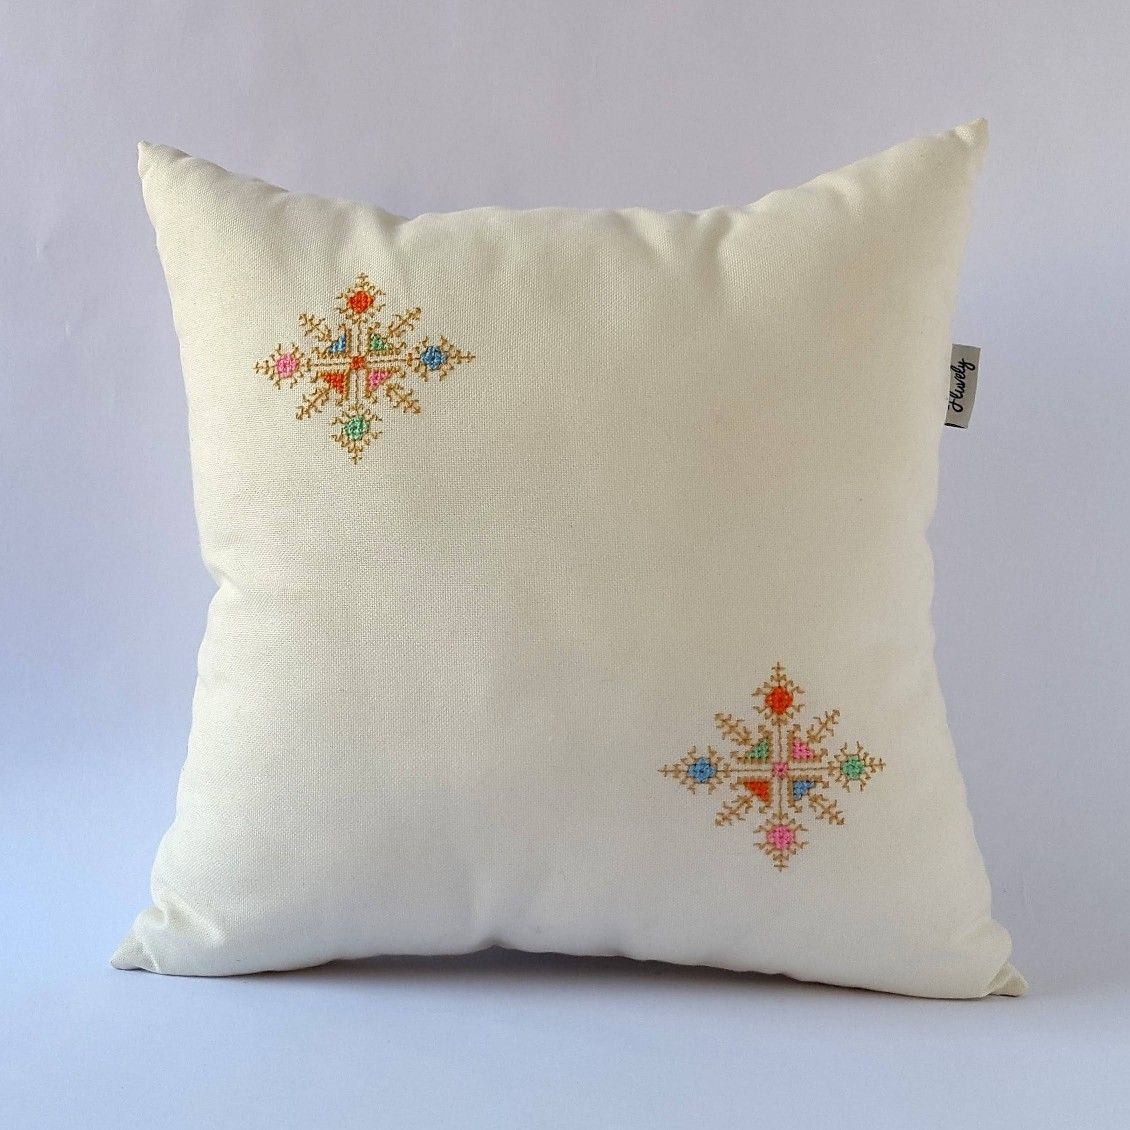 CROSS STITCHED Pattern Coussin Housse Rouge 40x40 cm